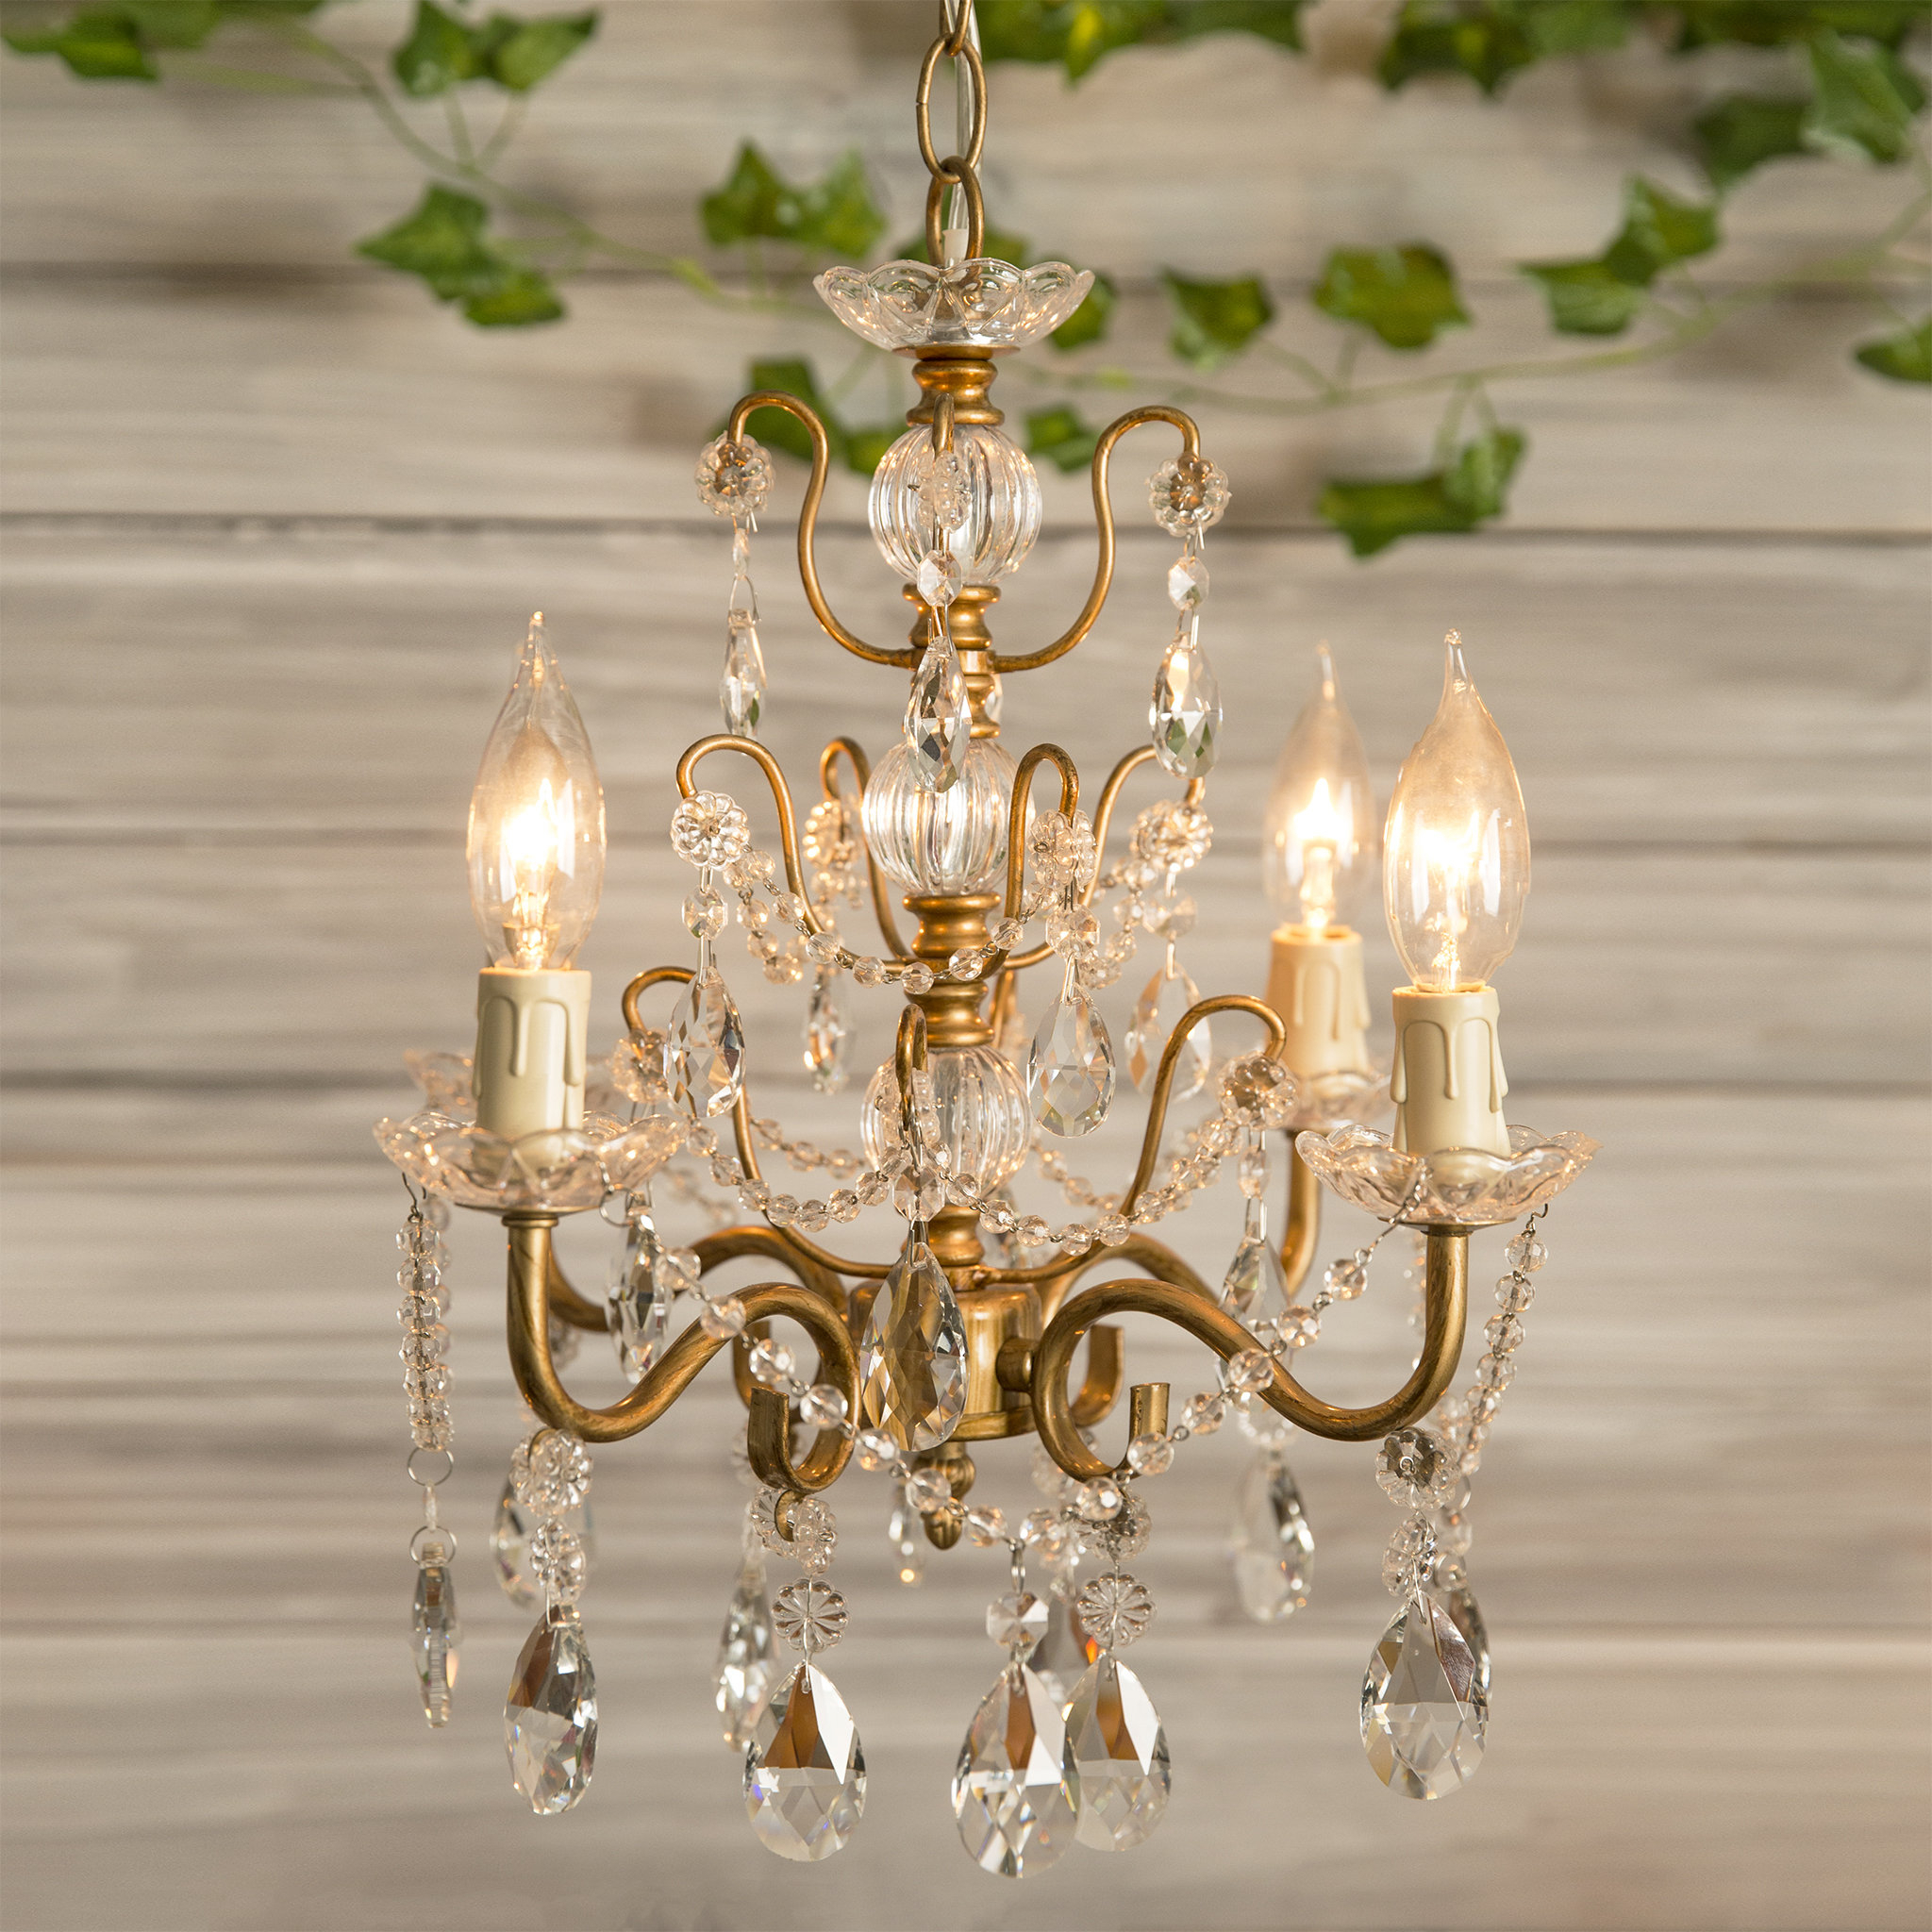 Current Blanchette 5 Light Candle Style Chandeliers Pertaining To Blanchette 4 Light Candle Style Chandelier (Gallery 4 of 20)